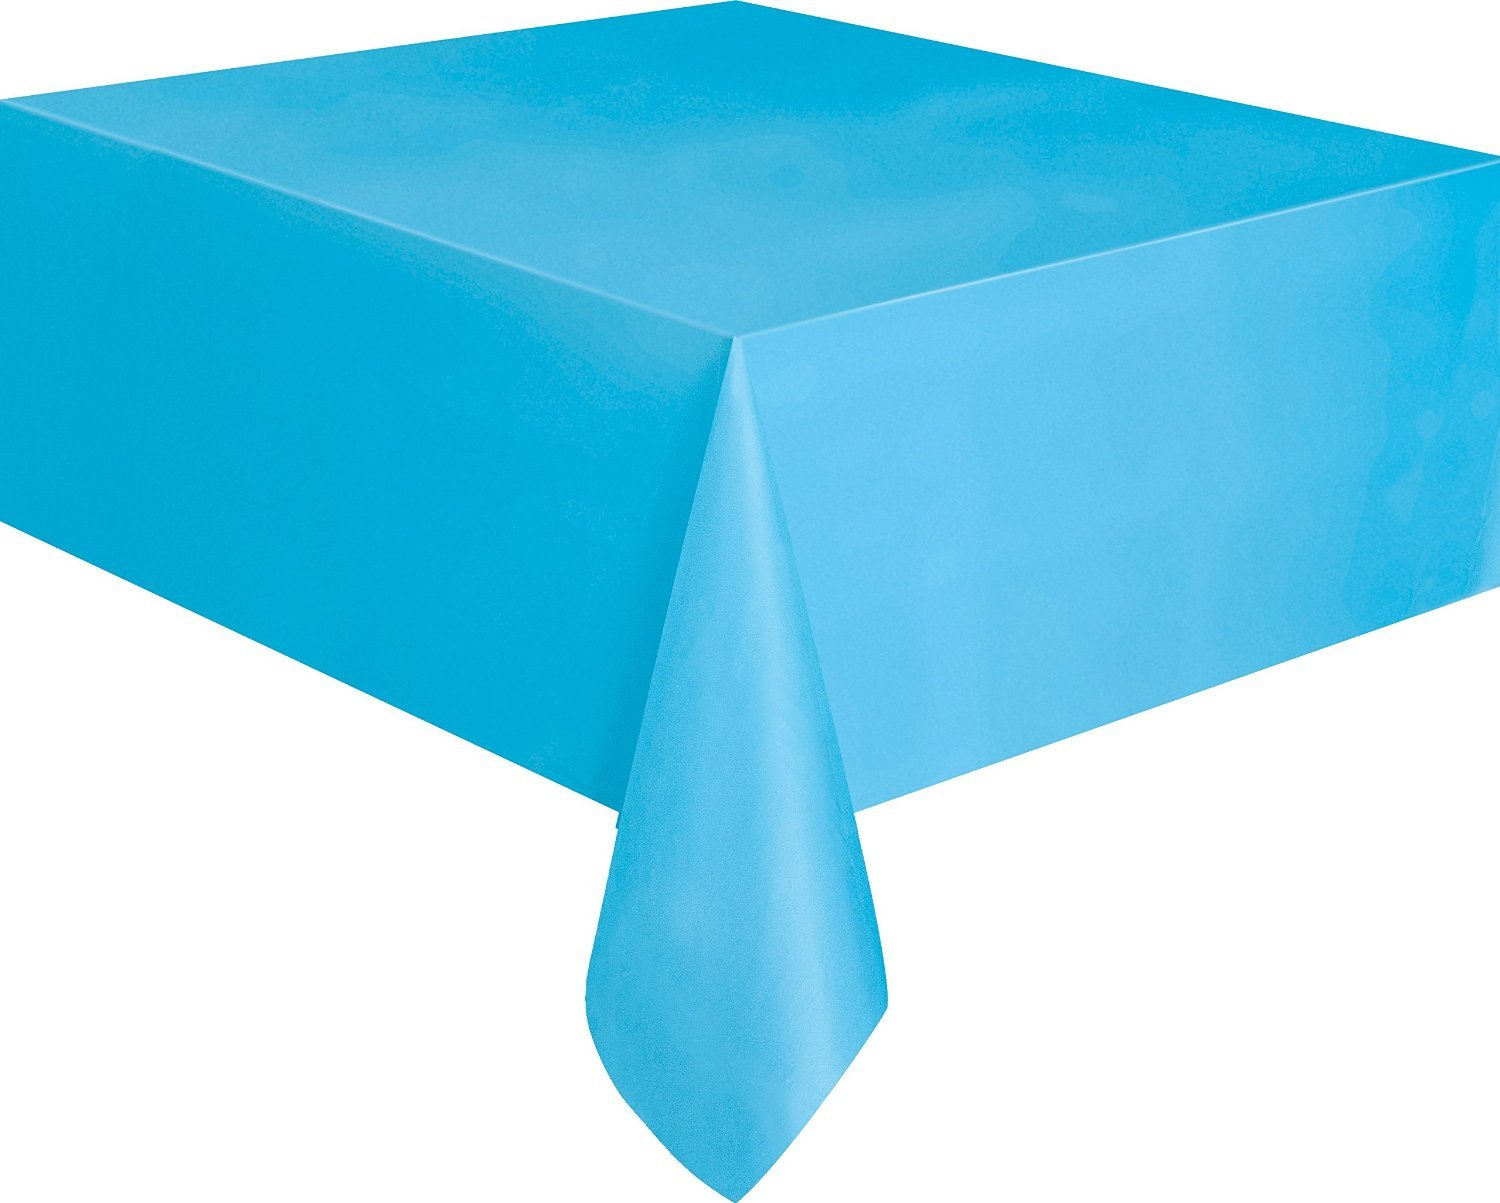 AEX PVC Table Cover Tablecloth Wipe Clean Disposable Plastic Party Tableware Vibrant Plain Colour (Black)